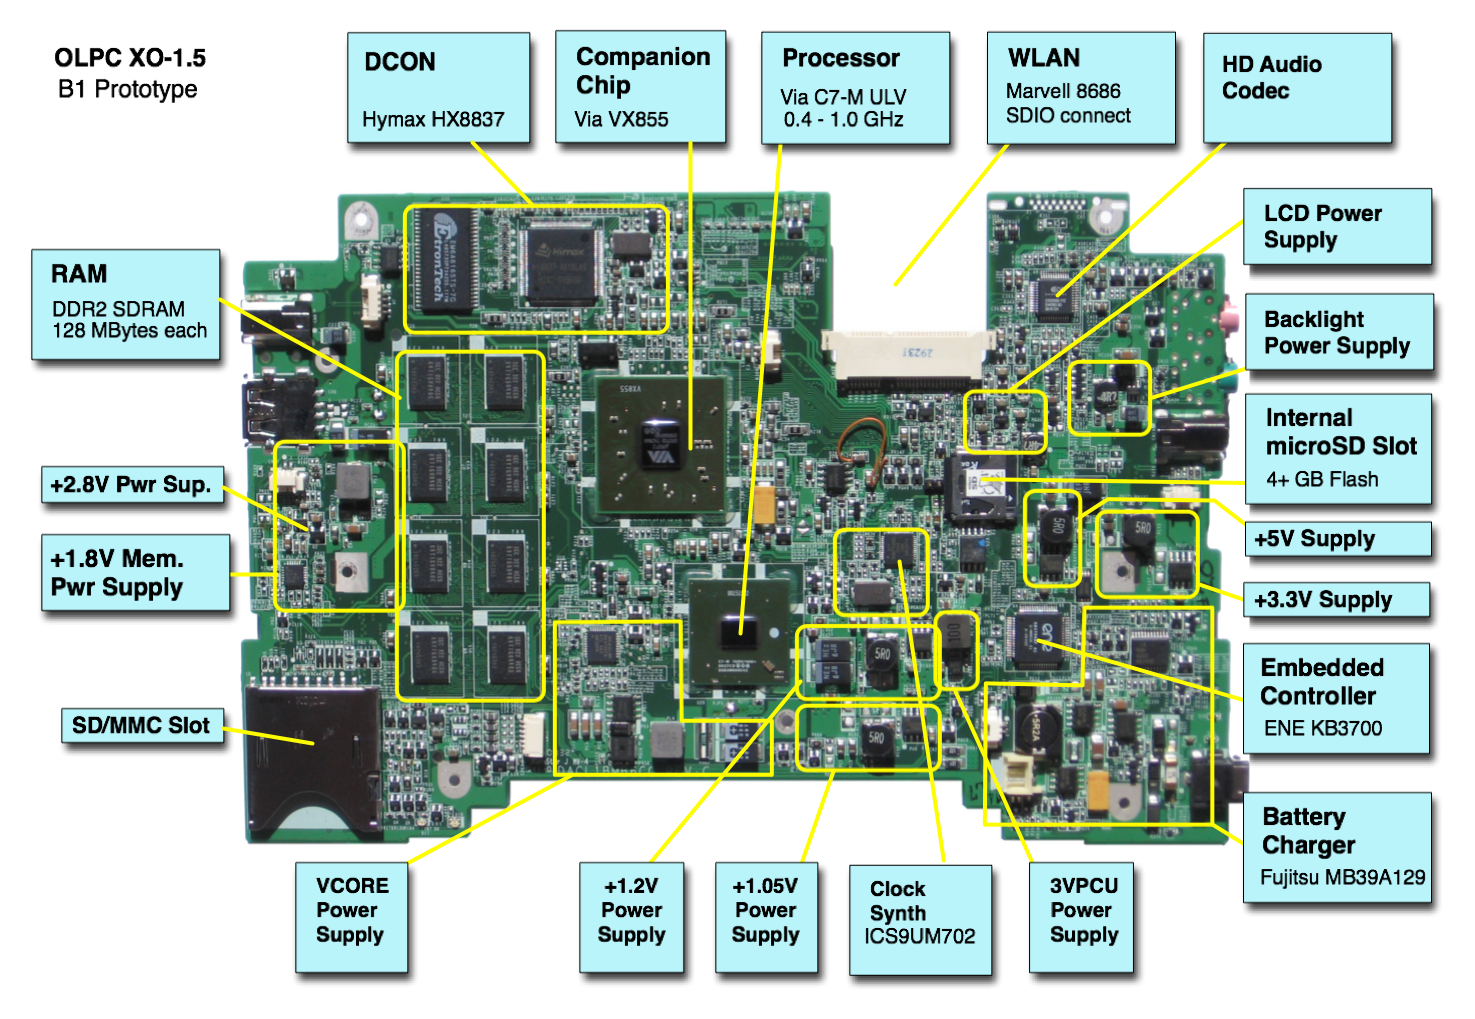 Laptop Motherboard Diagram With Labels Pdf Wiring Library Filexo 4 Block Diagrampdf Olpc Notebook Circuit Rh Pinterest Com Computer